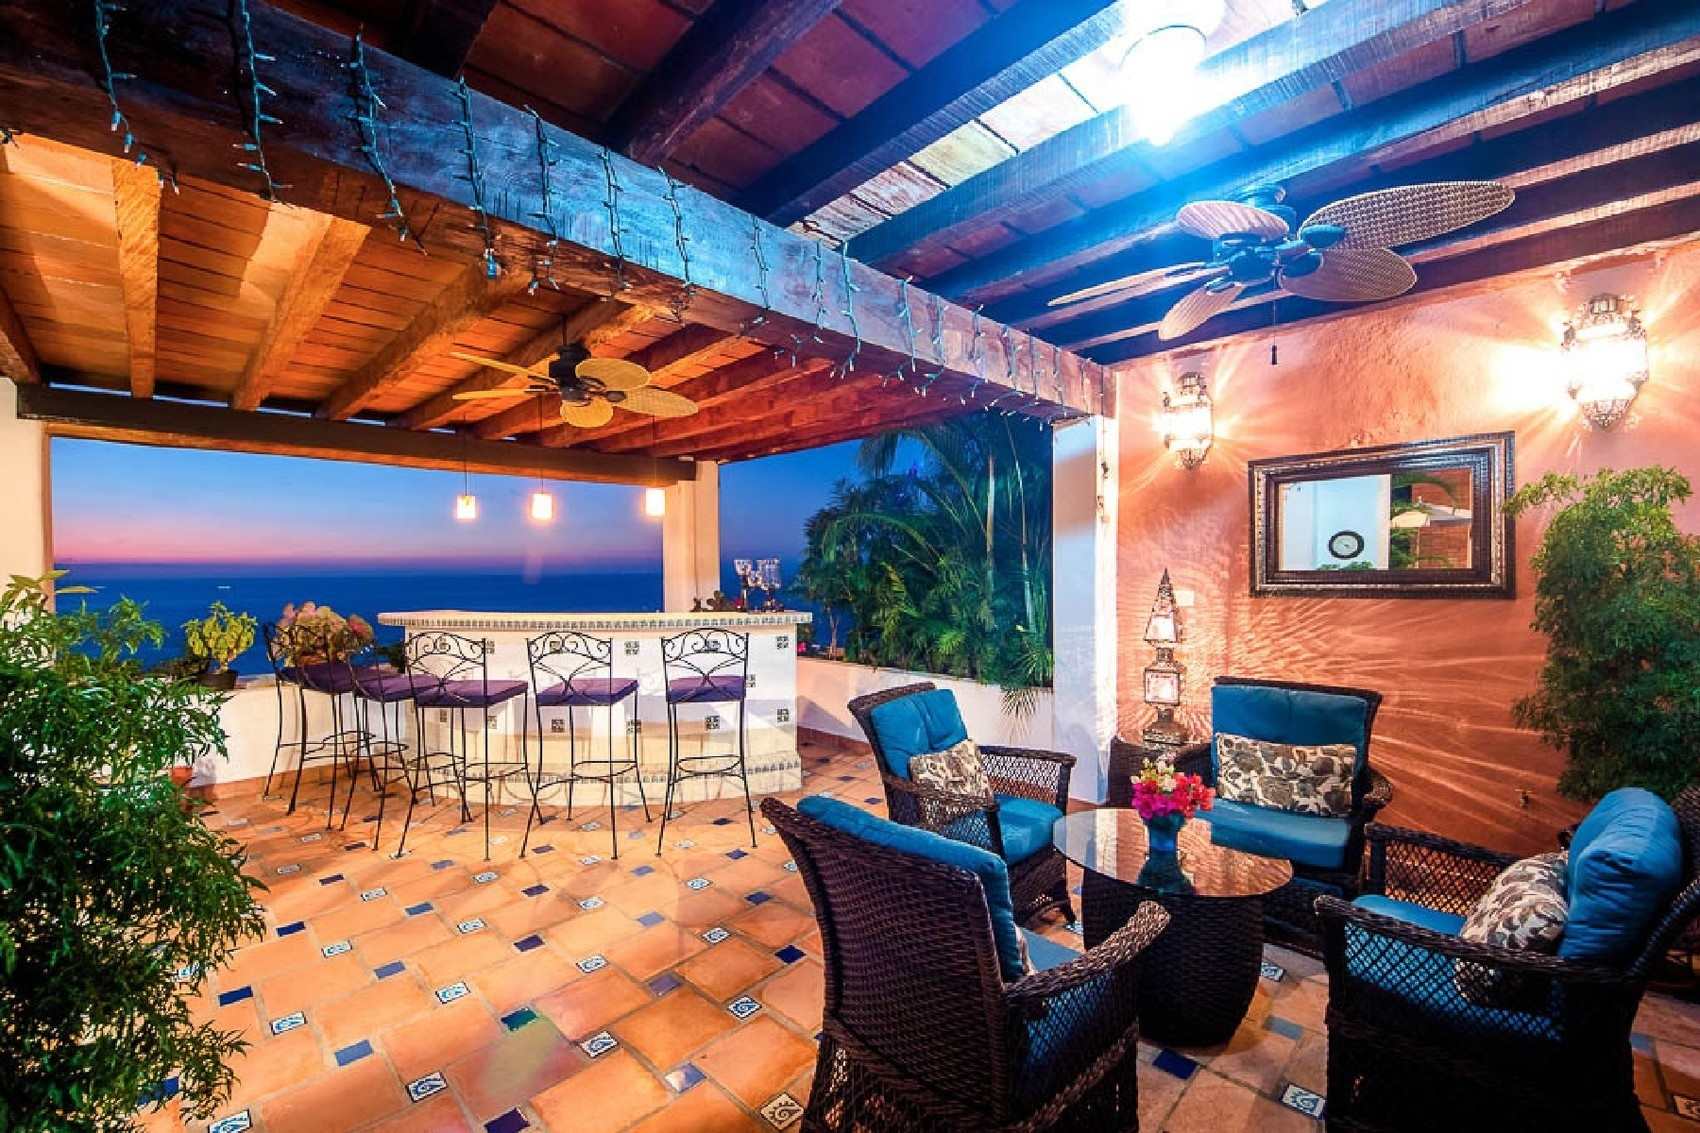 Pictured is an outdoor entertainment area of a waterfront apartment in Conchas Chinas. The four bedro